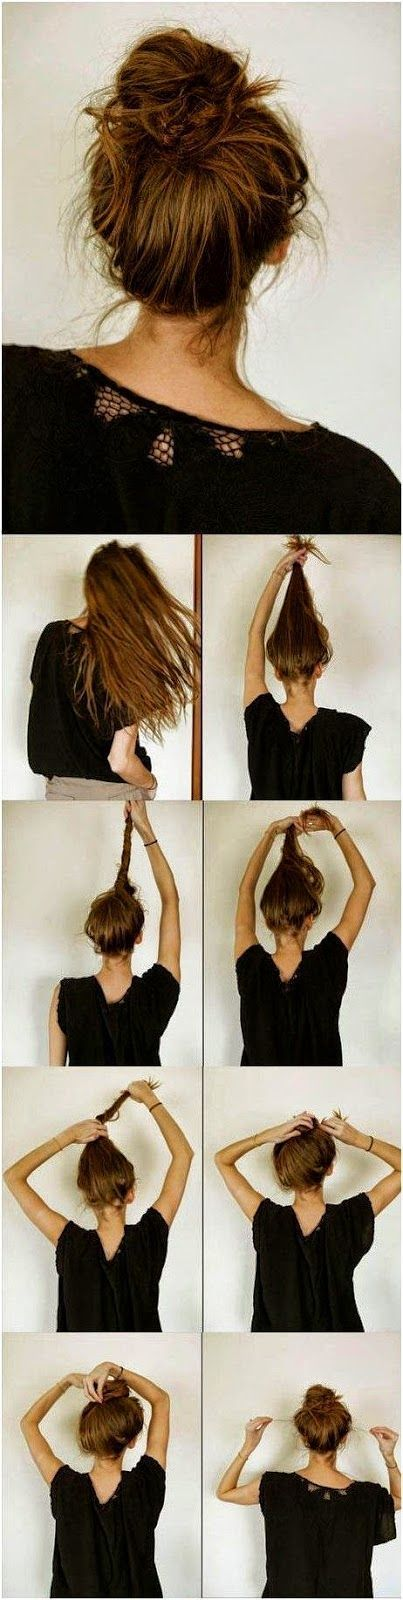 5 Easy Messy Buns For Long Hair Tutorial I can NEVER get a bun to stay the way i want it to, and the one in the pic actually works for me! F I N A L L Y